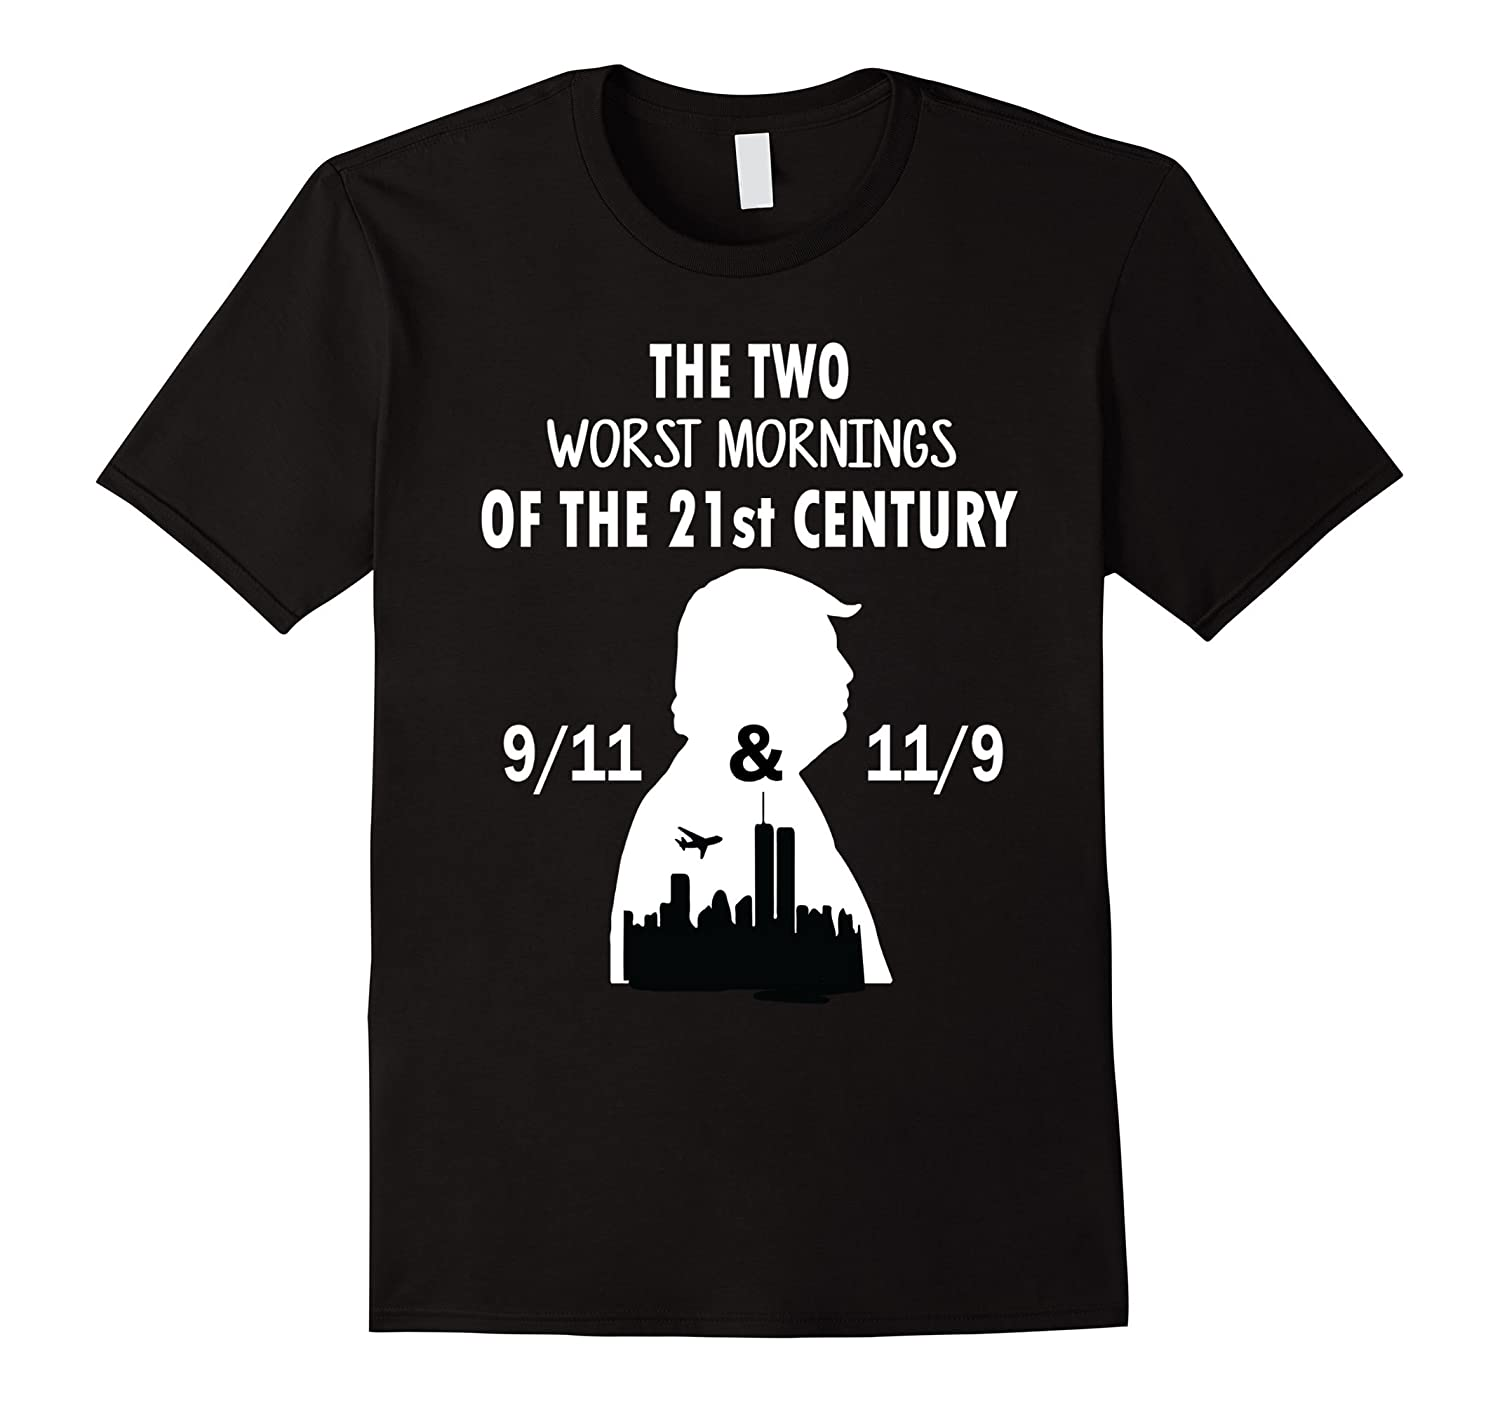 The Two Worst Mornings 21st Century 9/11 11/9 T-Shirt-BN